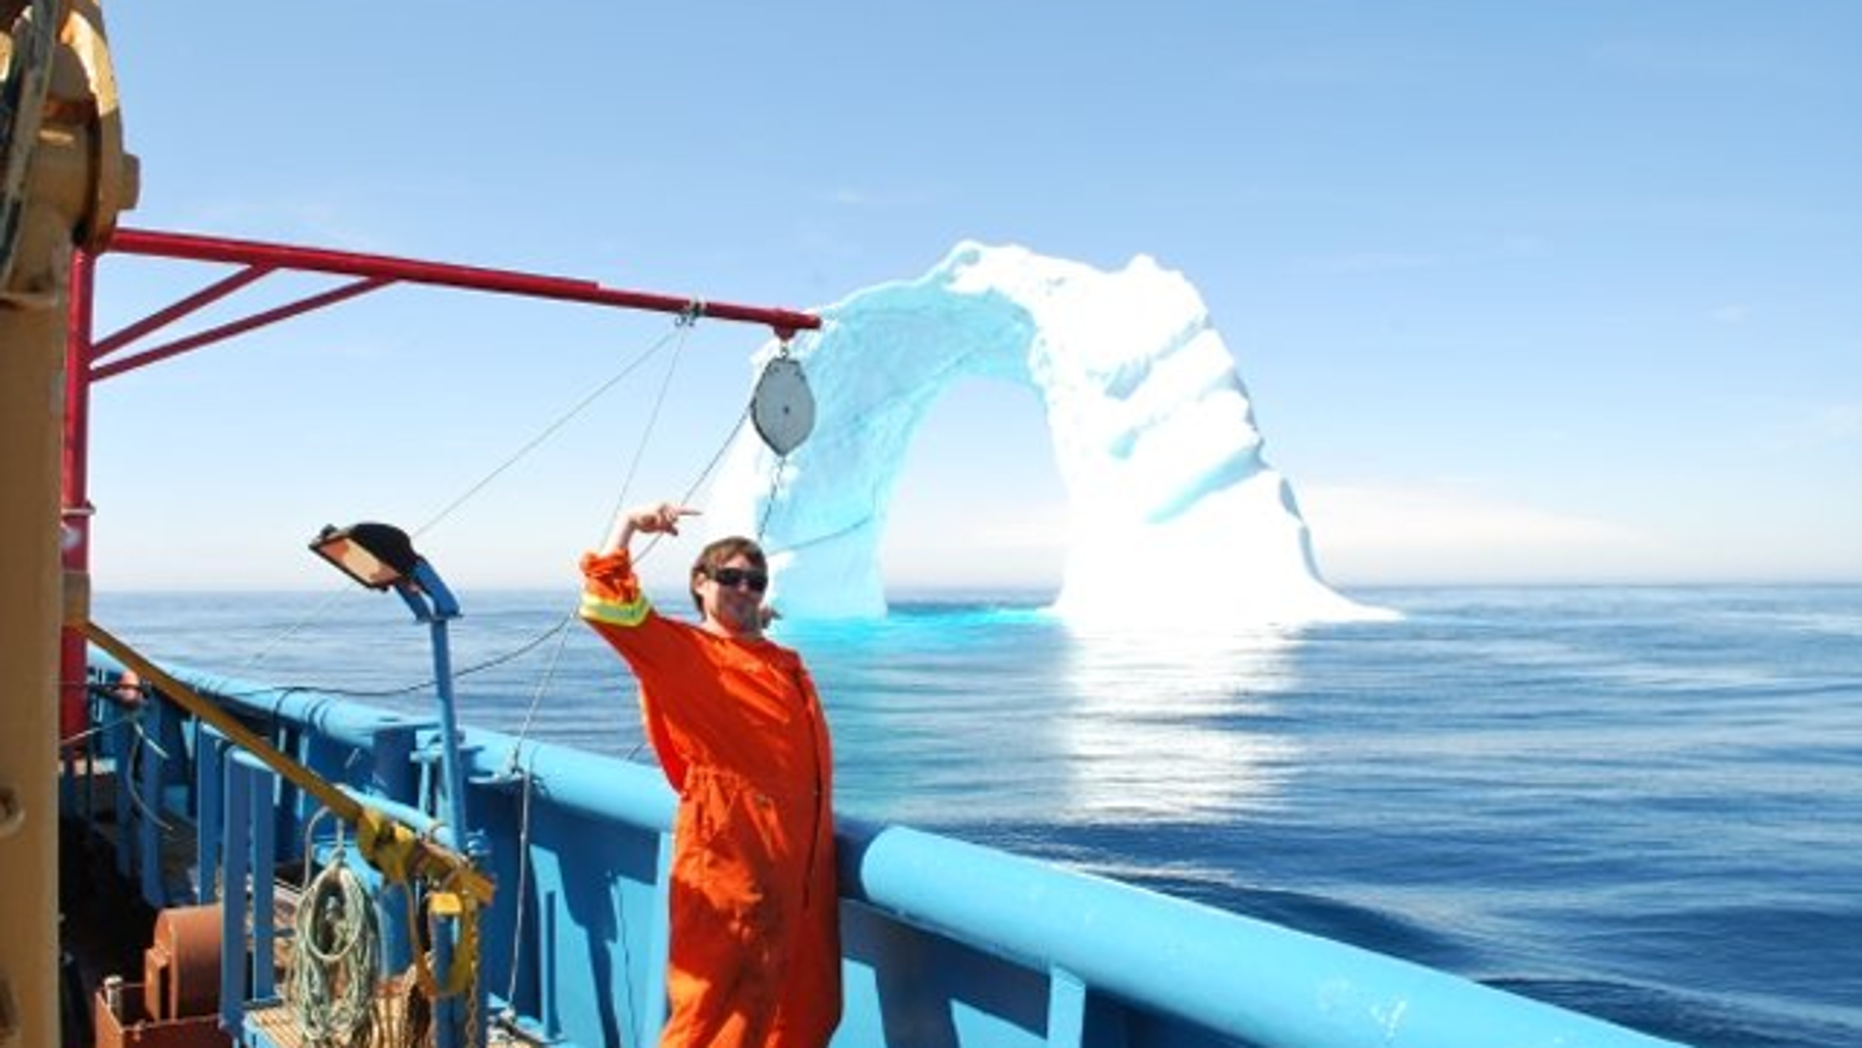 Strange sighting: an iceberg archway, floating in the middle of the Atlantic Ocean.